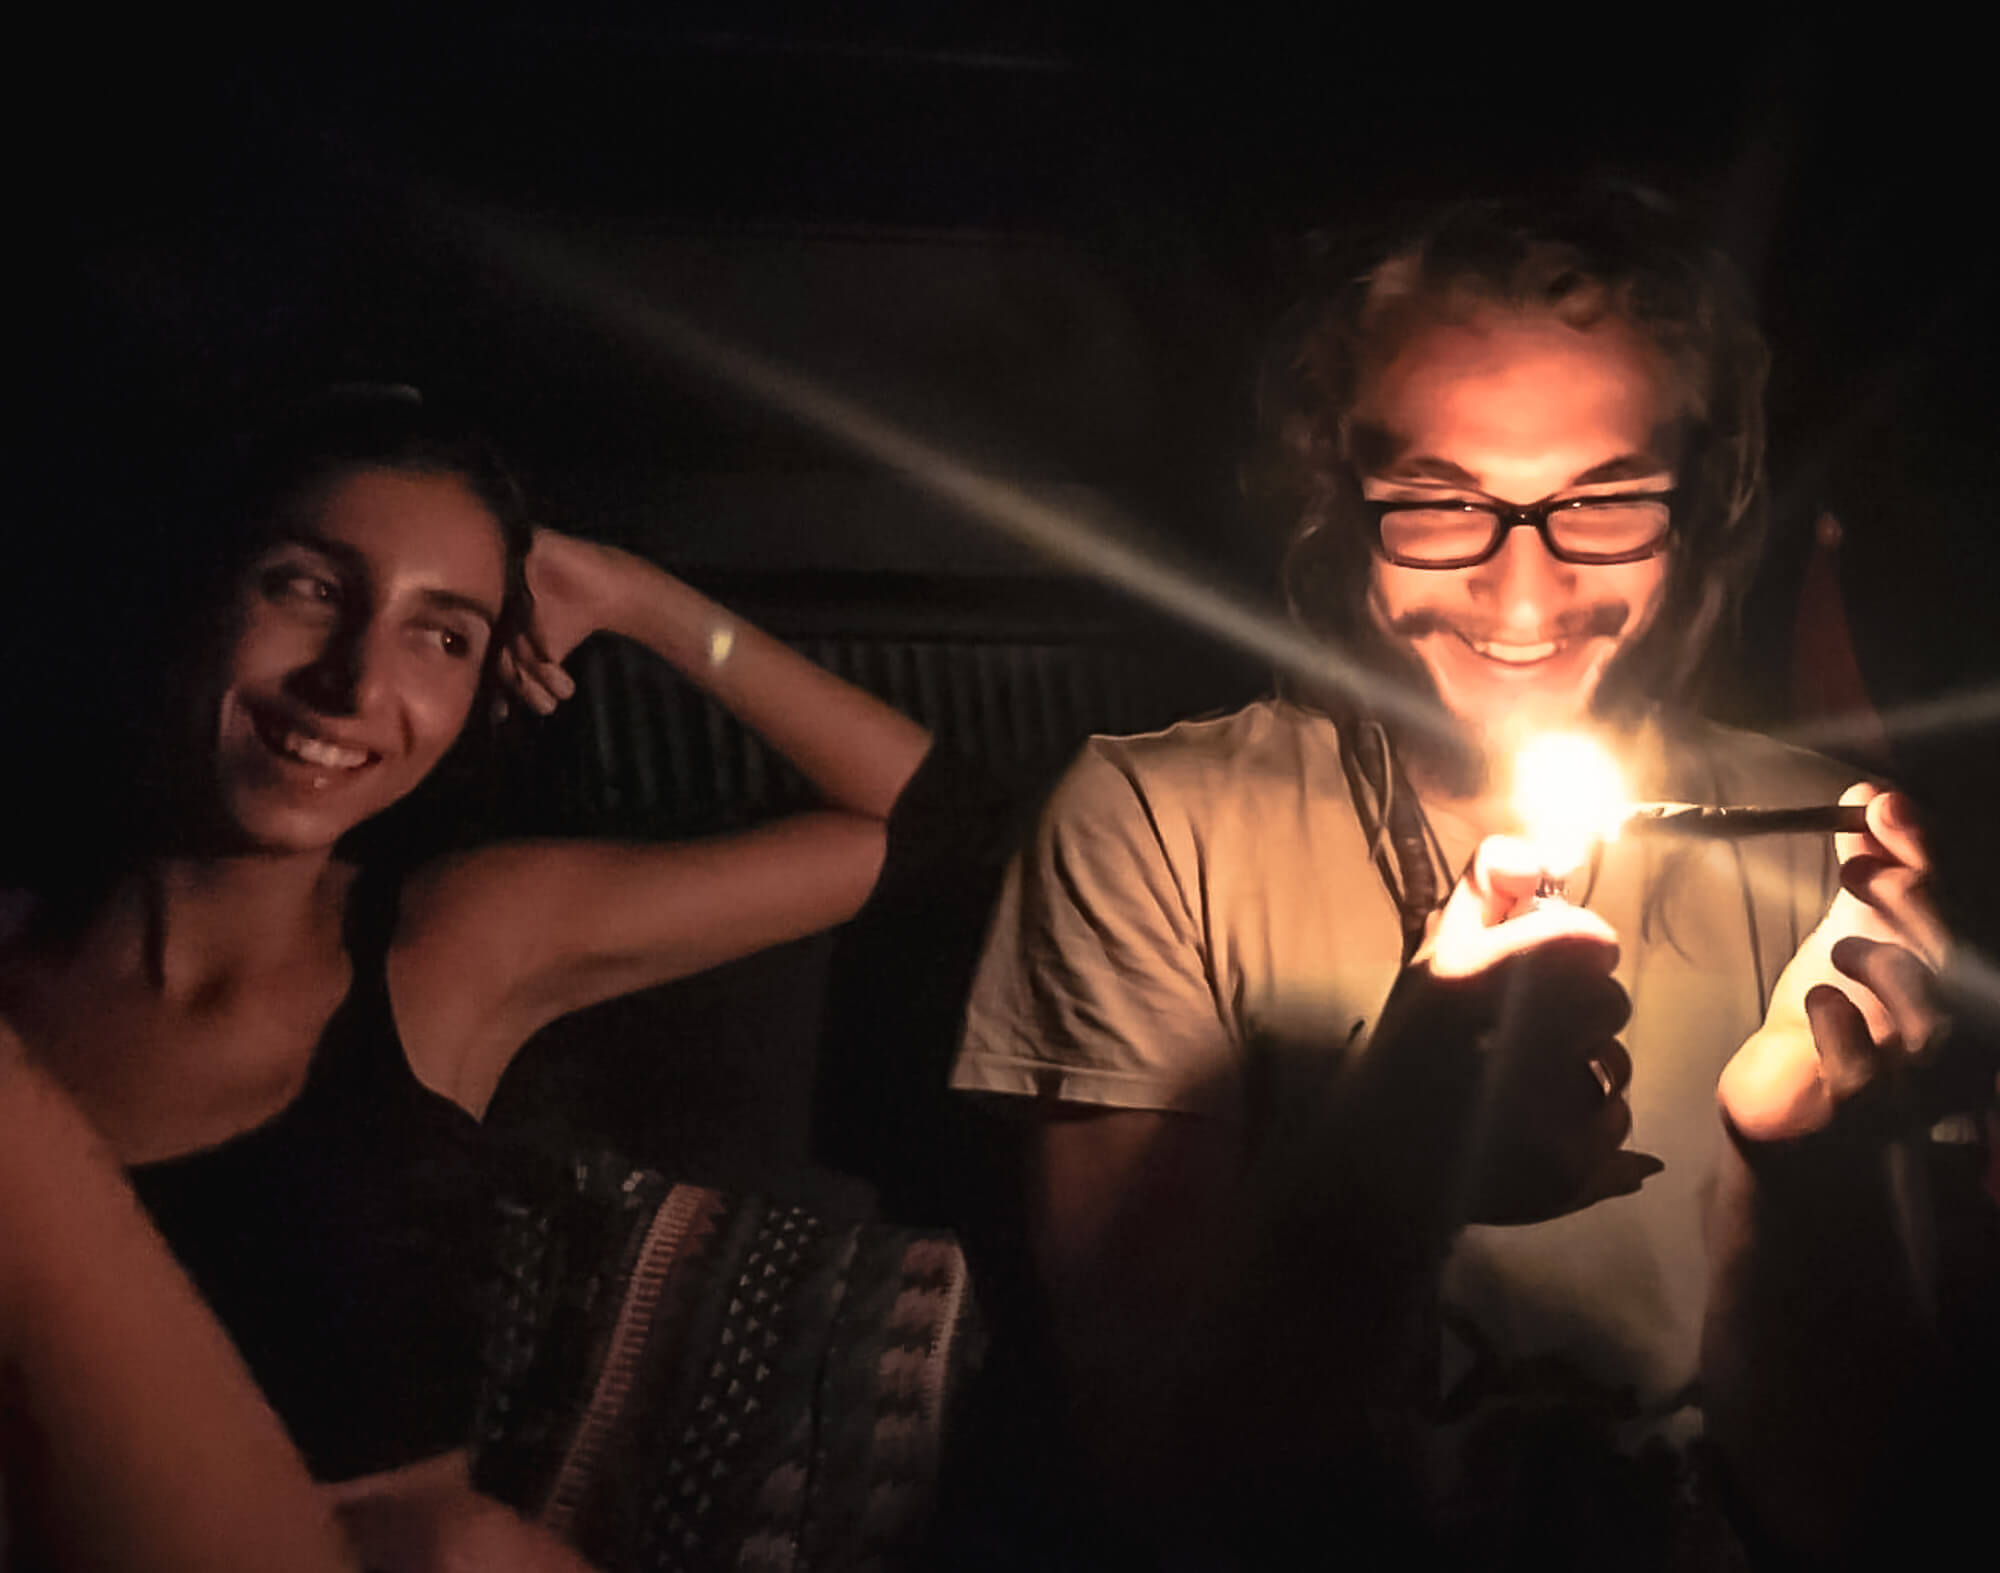 Me smoking with a female travel buddy I met in Sri Lanka